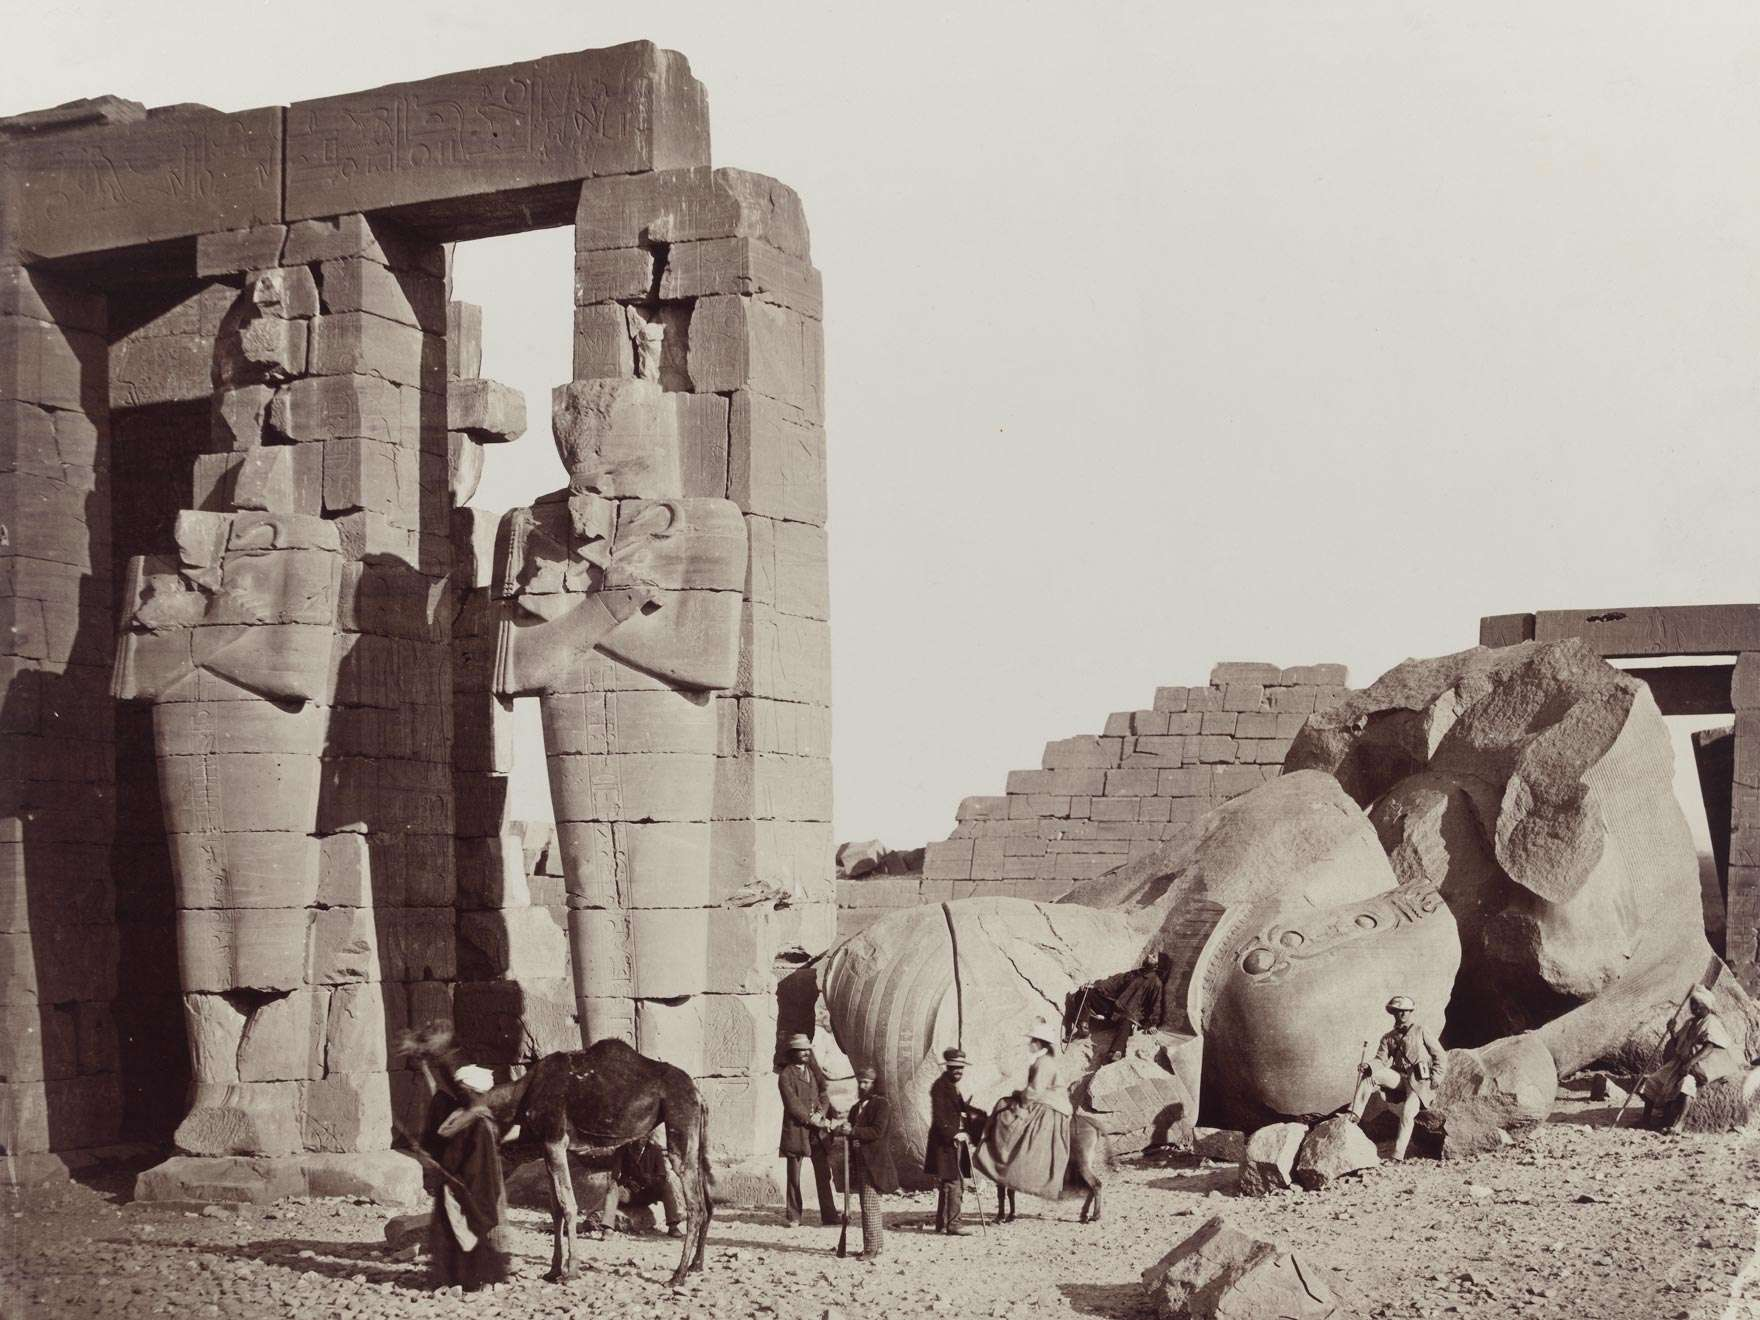 Francis Frith's photograph of the Ramesseum of El-Kurnehin Thebes